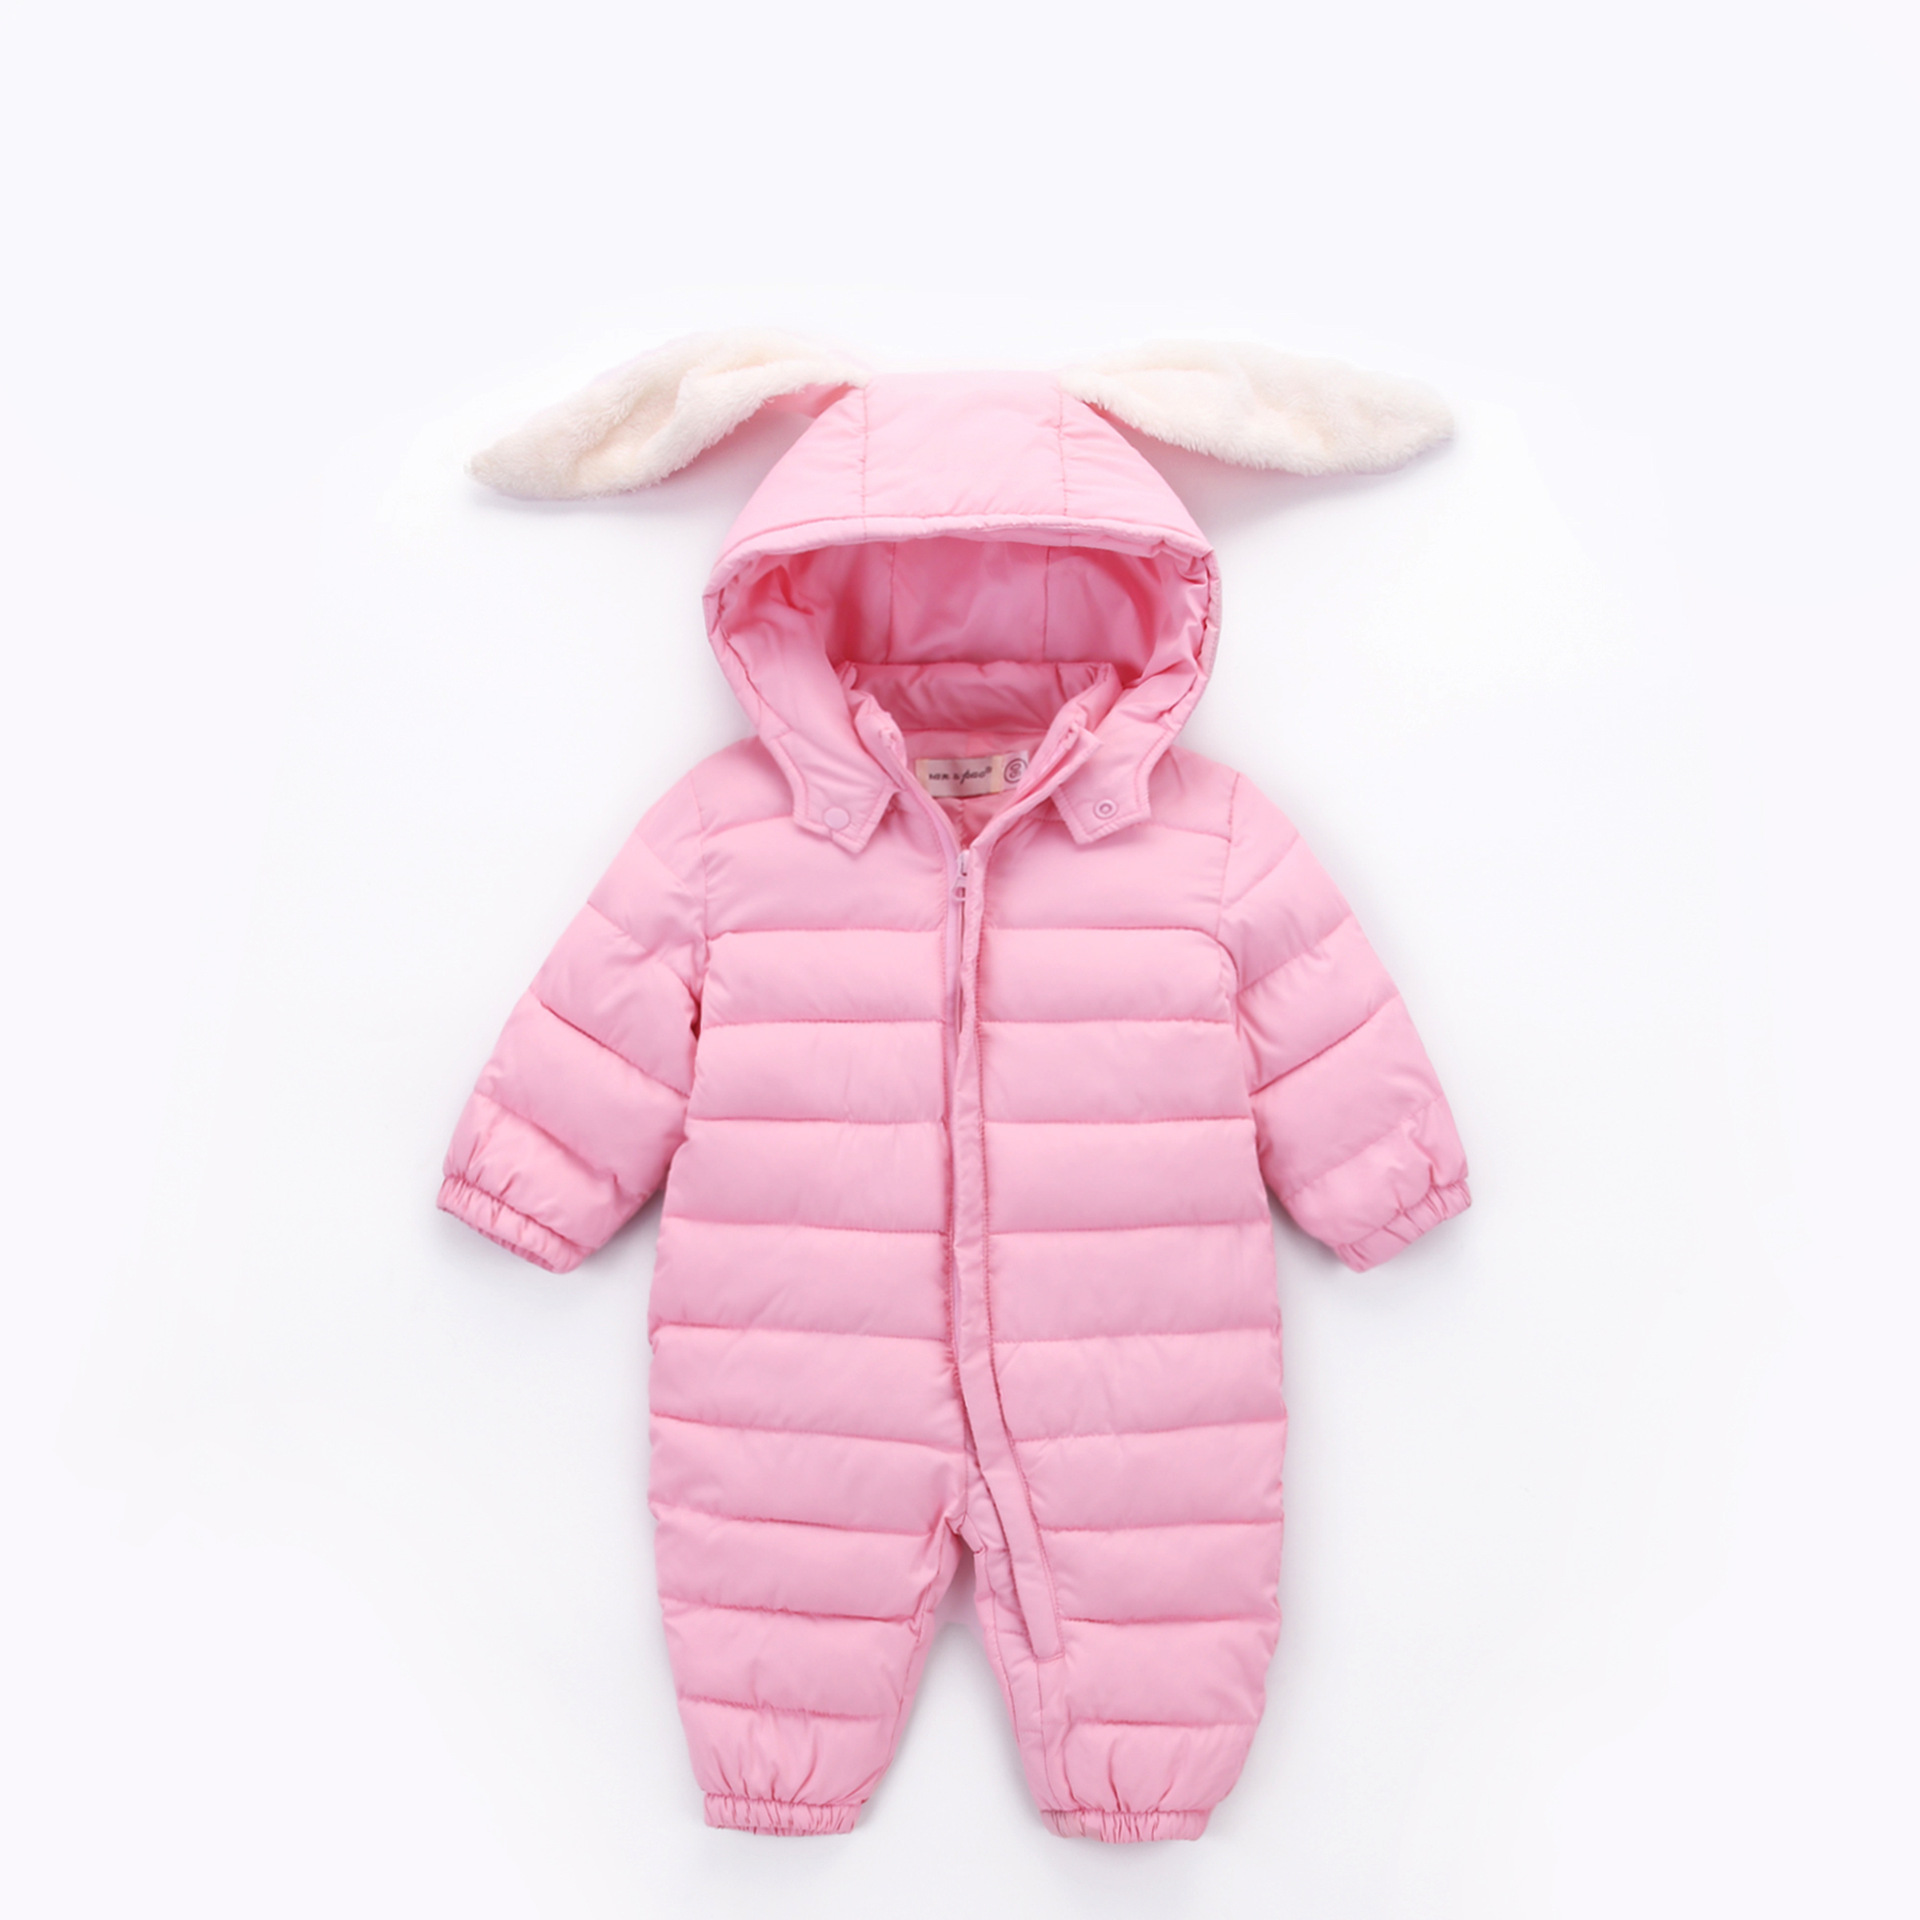 Bunny Rompers Baby Winter Infant New Year Baby Winter Cloth Coveralls Newborns Warm Romper Rabbit Winter Overalls For Newborns in Rompers from Mother Kids